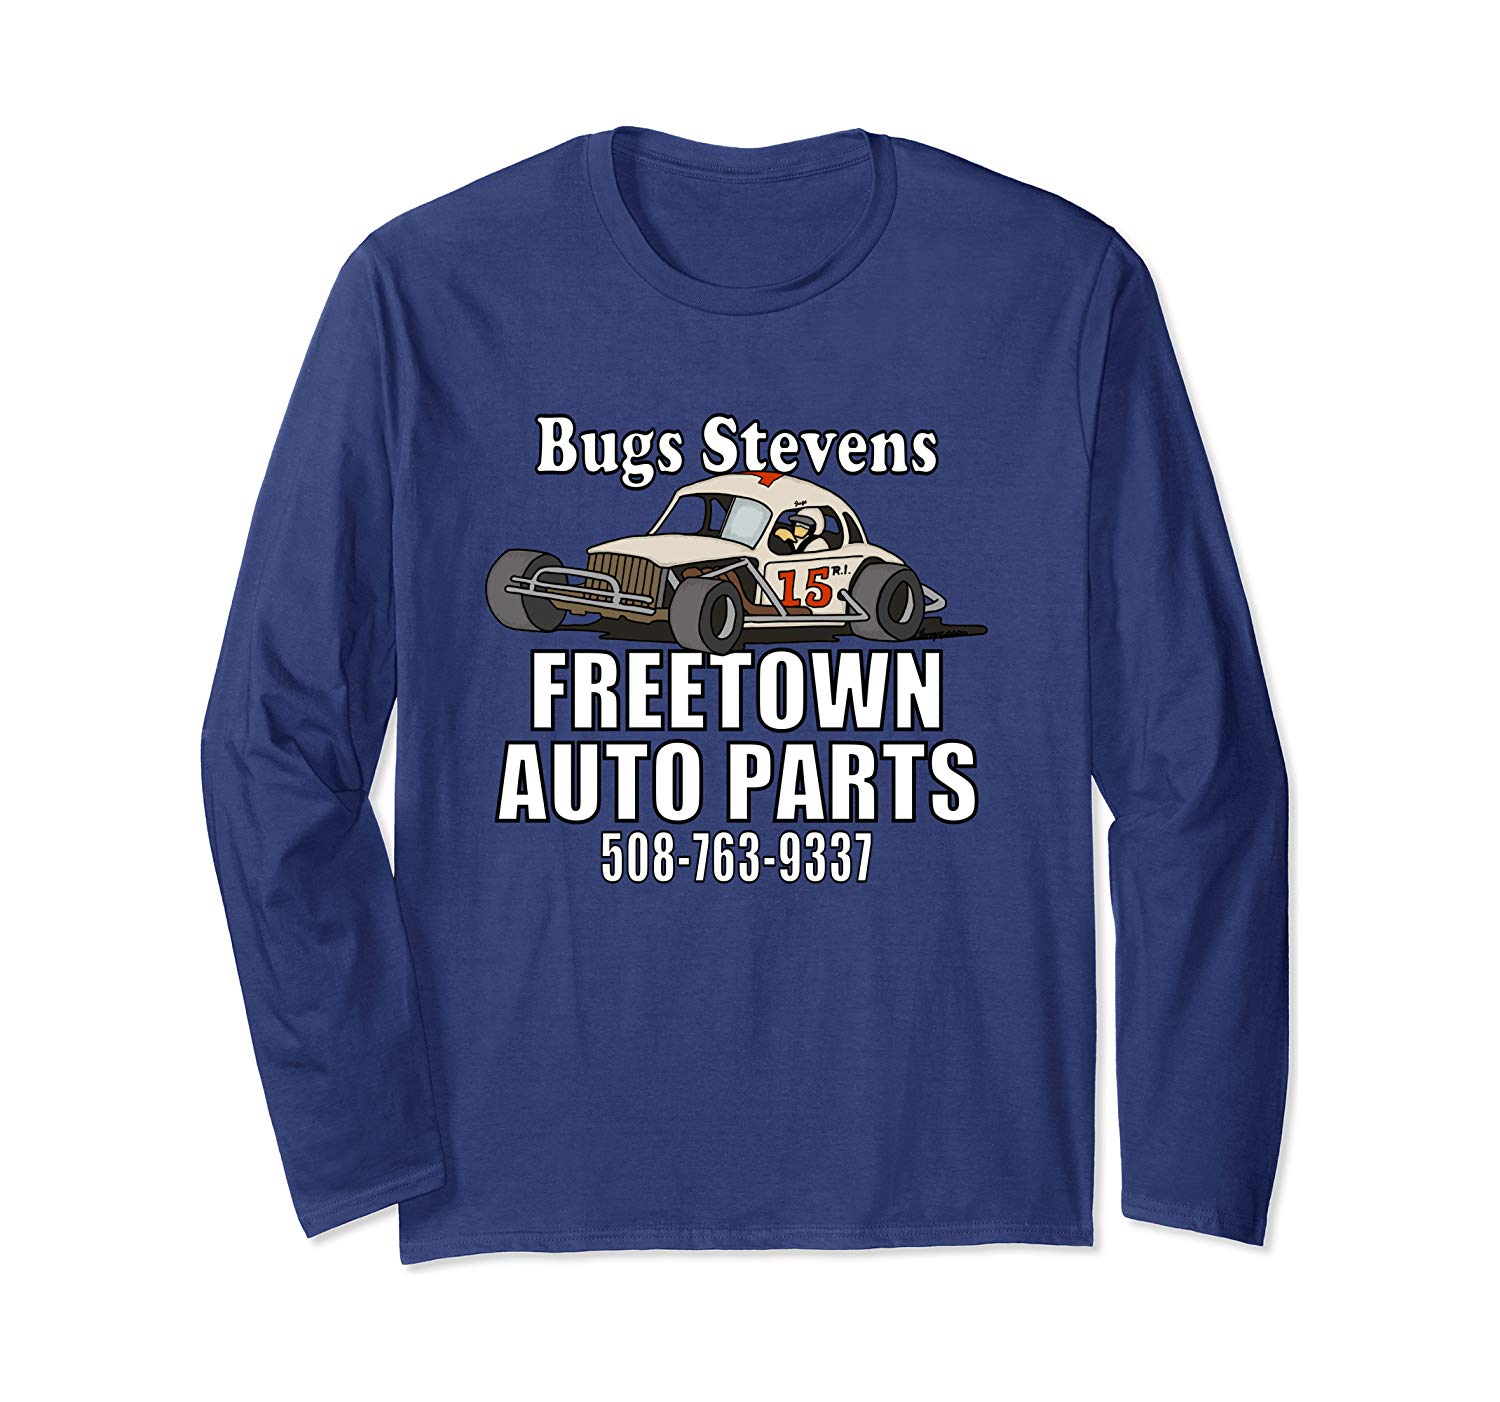 BUGS STEVENS FREETOWN AUTO PARTS   Long Sleeve T